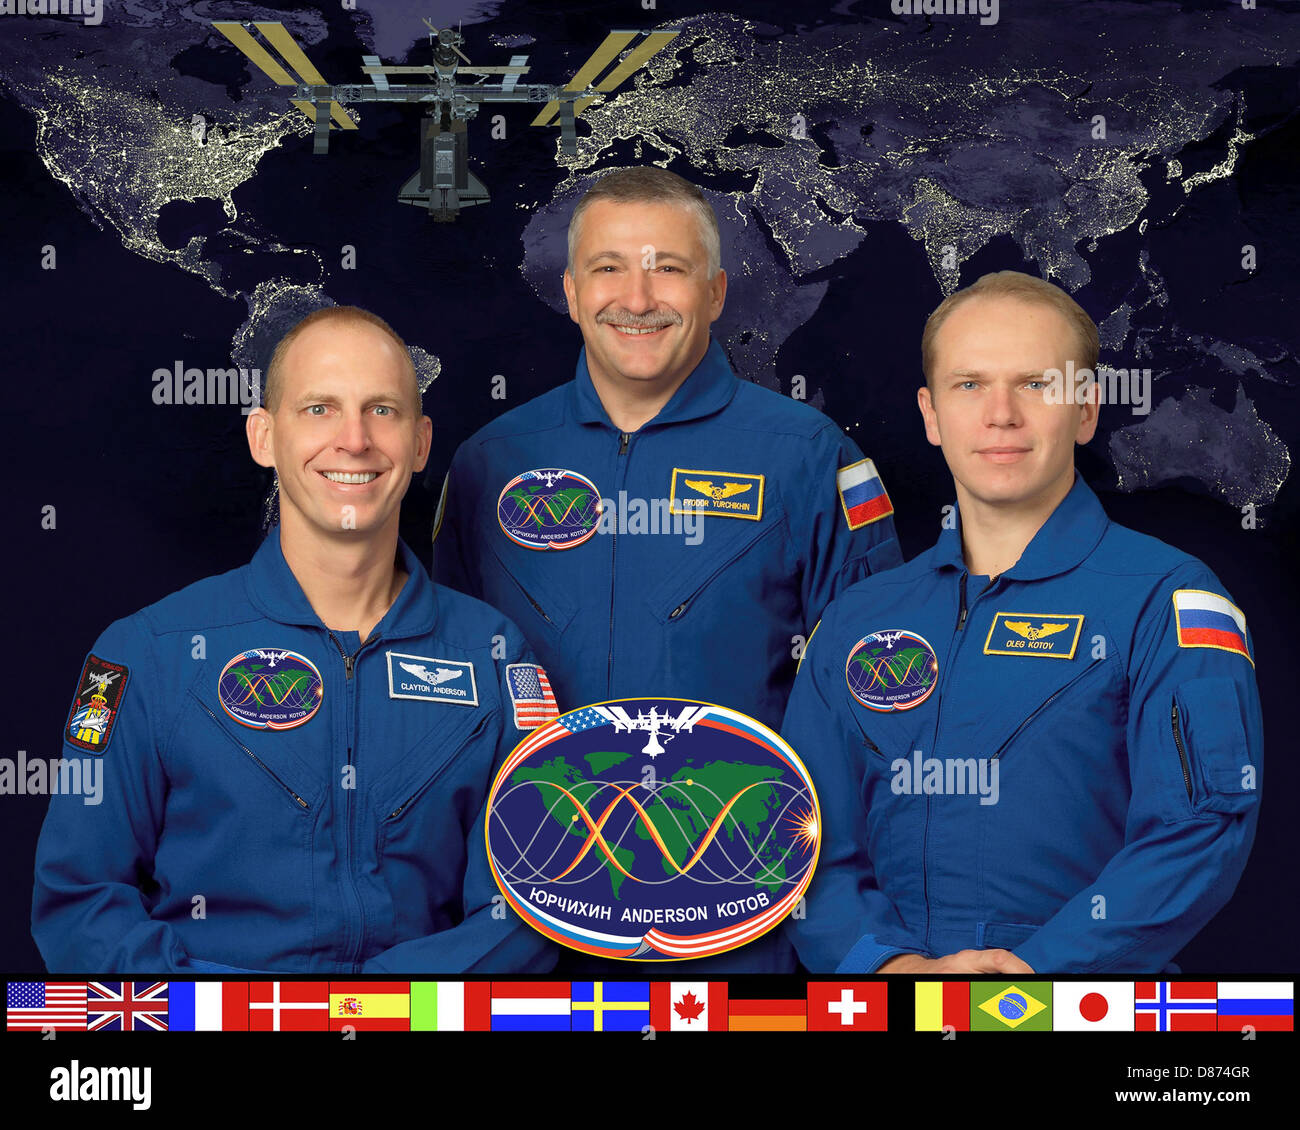 Expedition 15.jpg - Stock Image